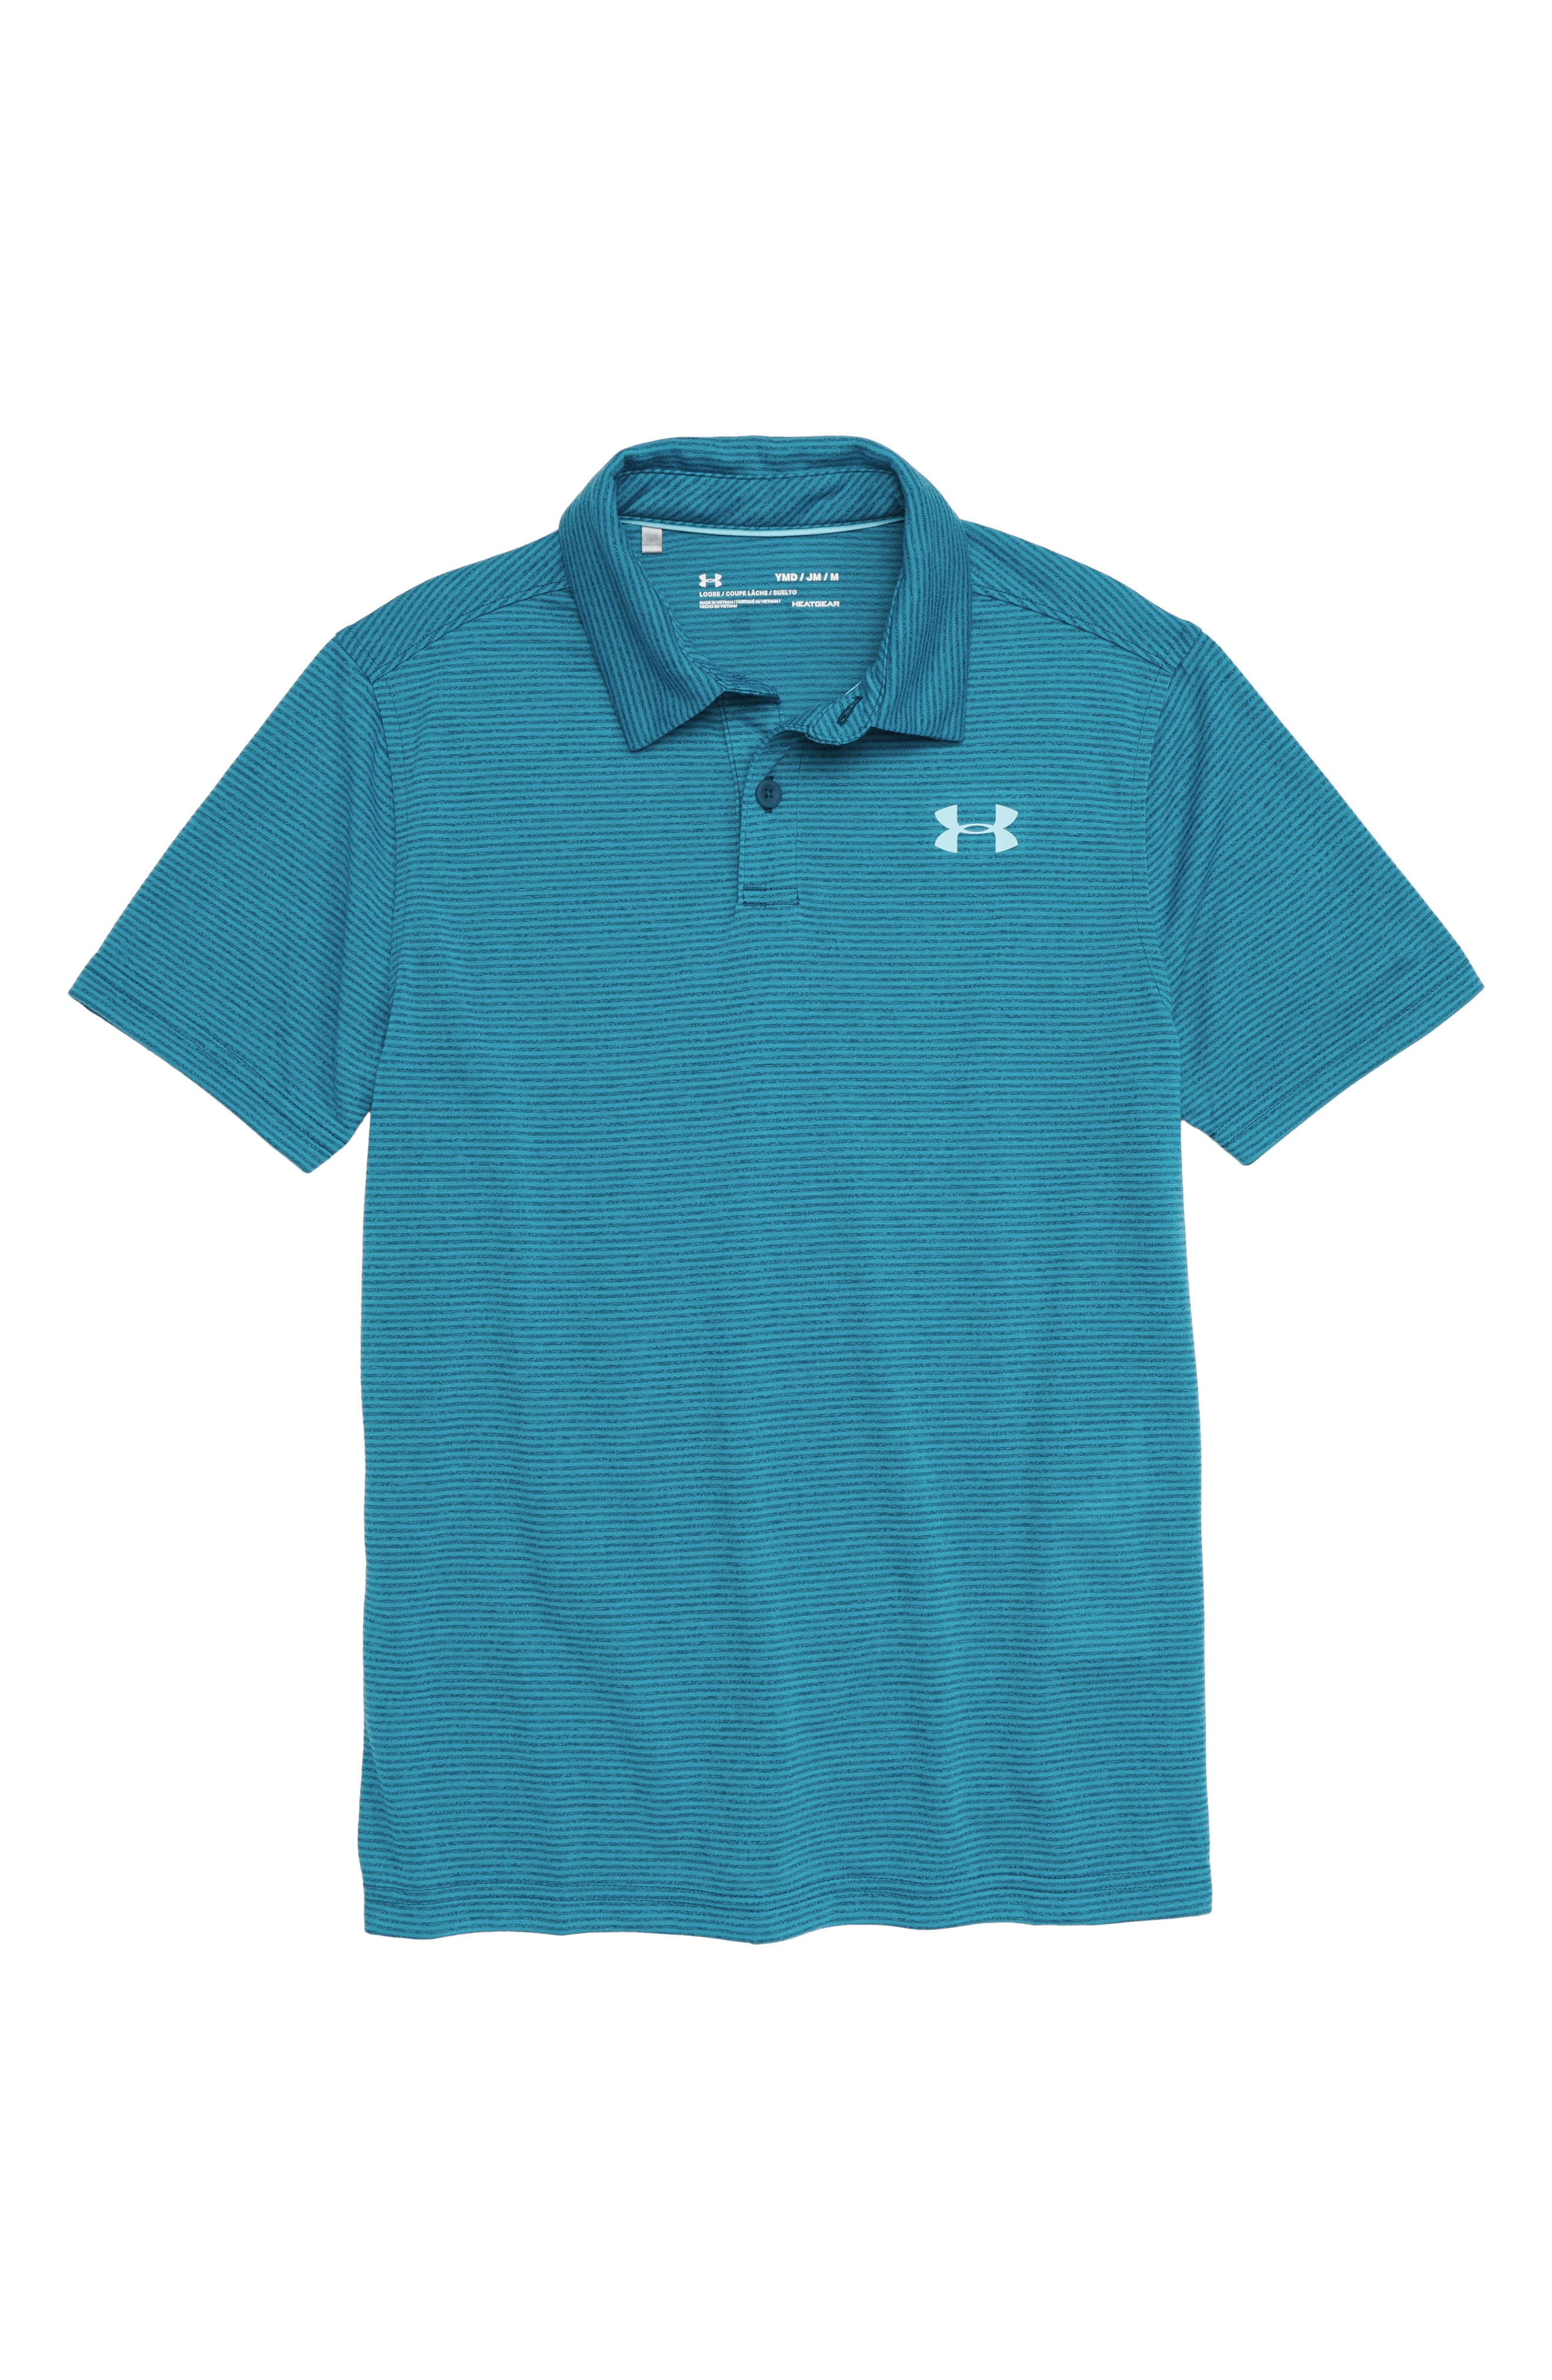 Threadborne Polo,                             Main thumbnail 1, color,                             Techno Teal/ Venetian Blue